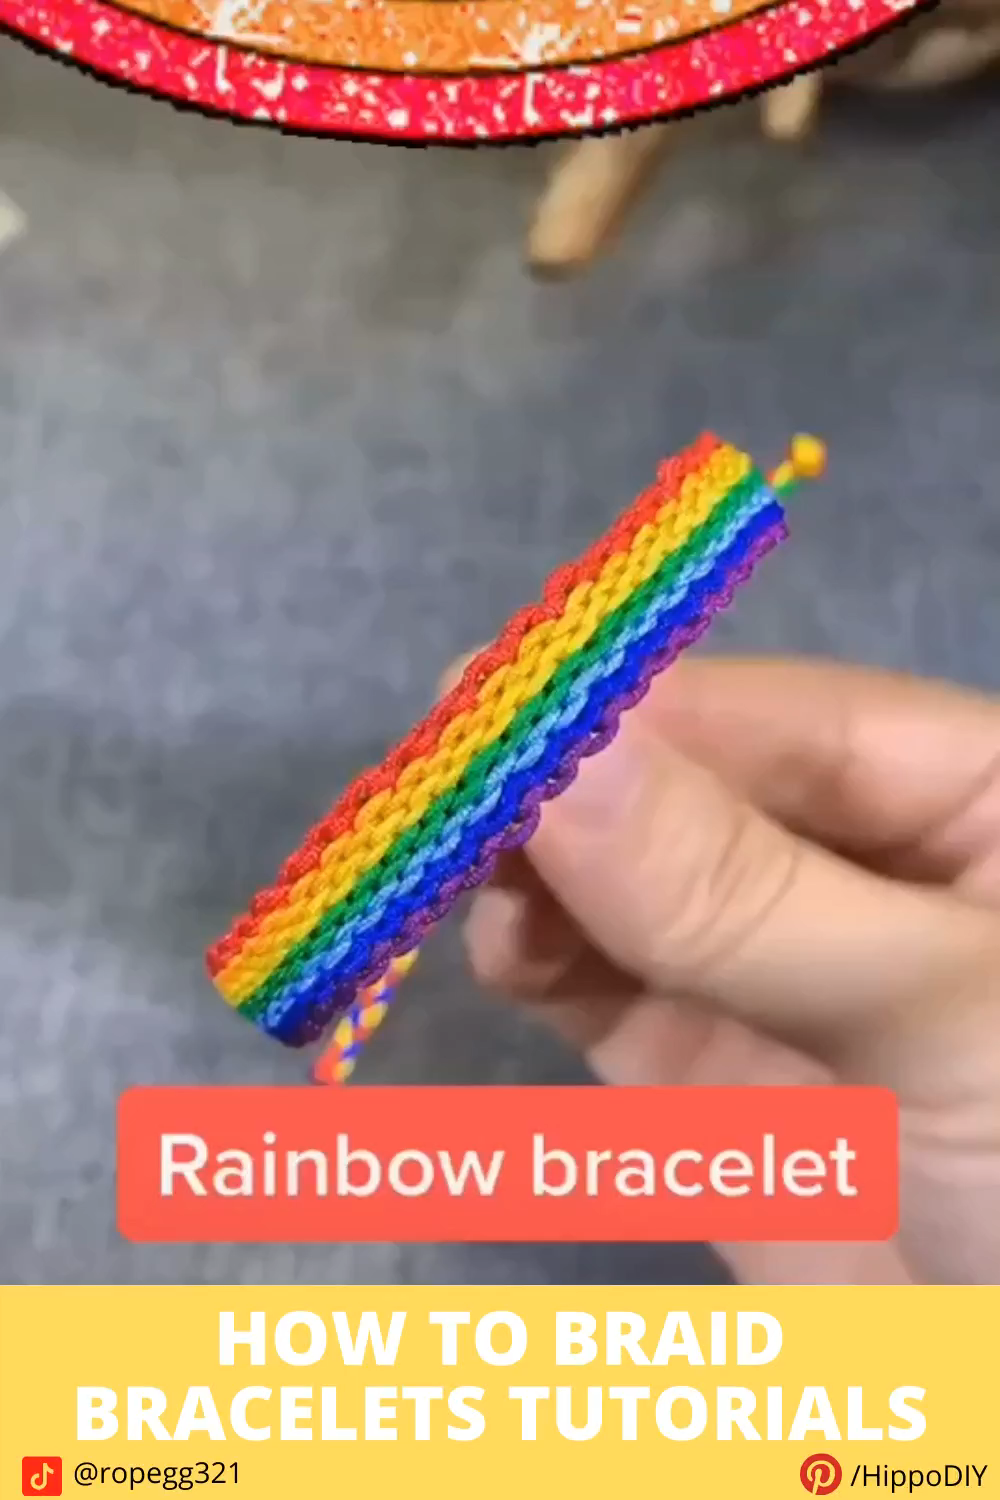 This tutorial shows you how to braid a rope bracelet in a very easy way. Visit the website to learn about the 8 remaining styles